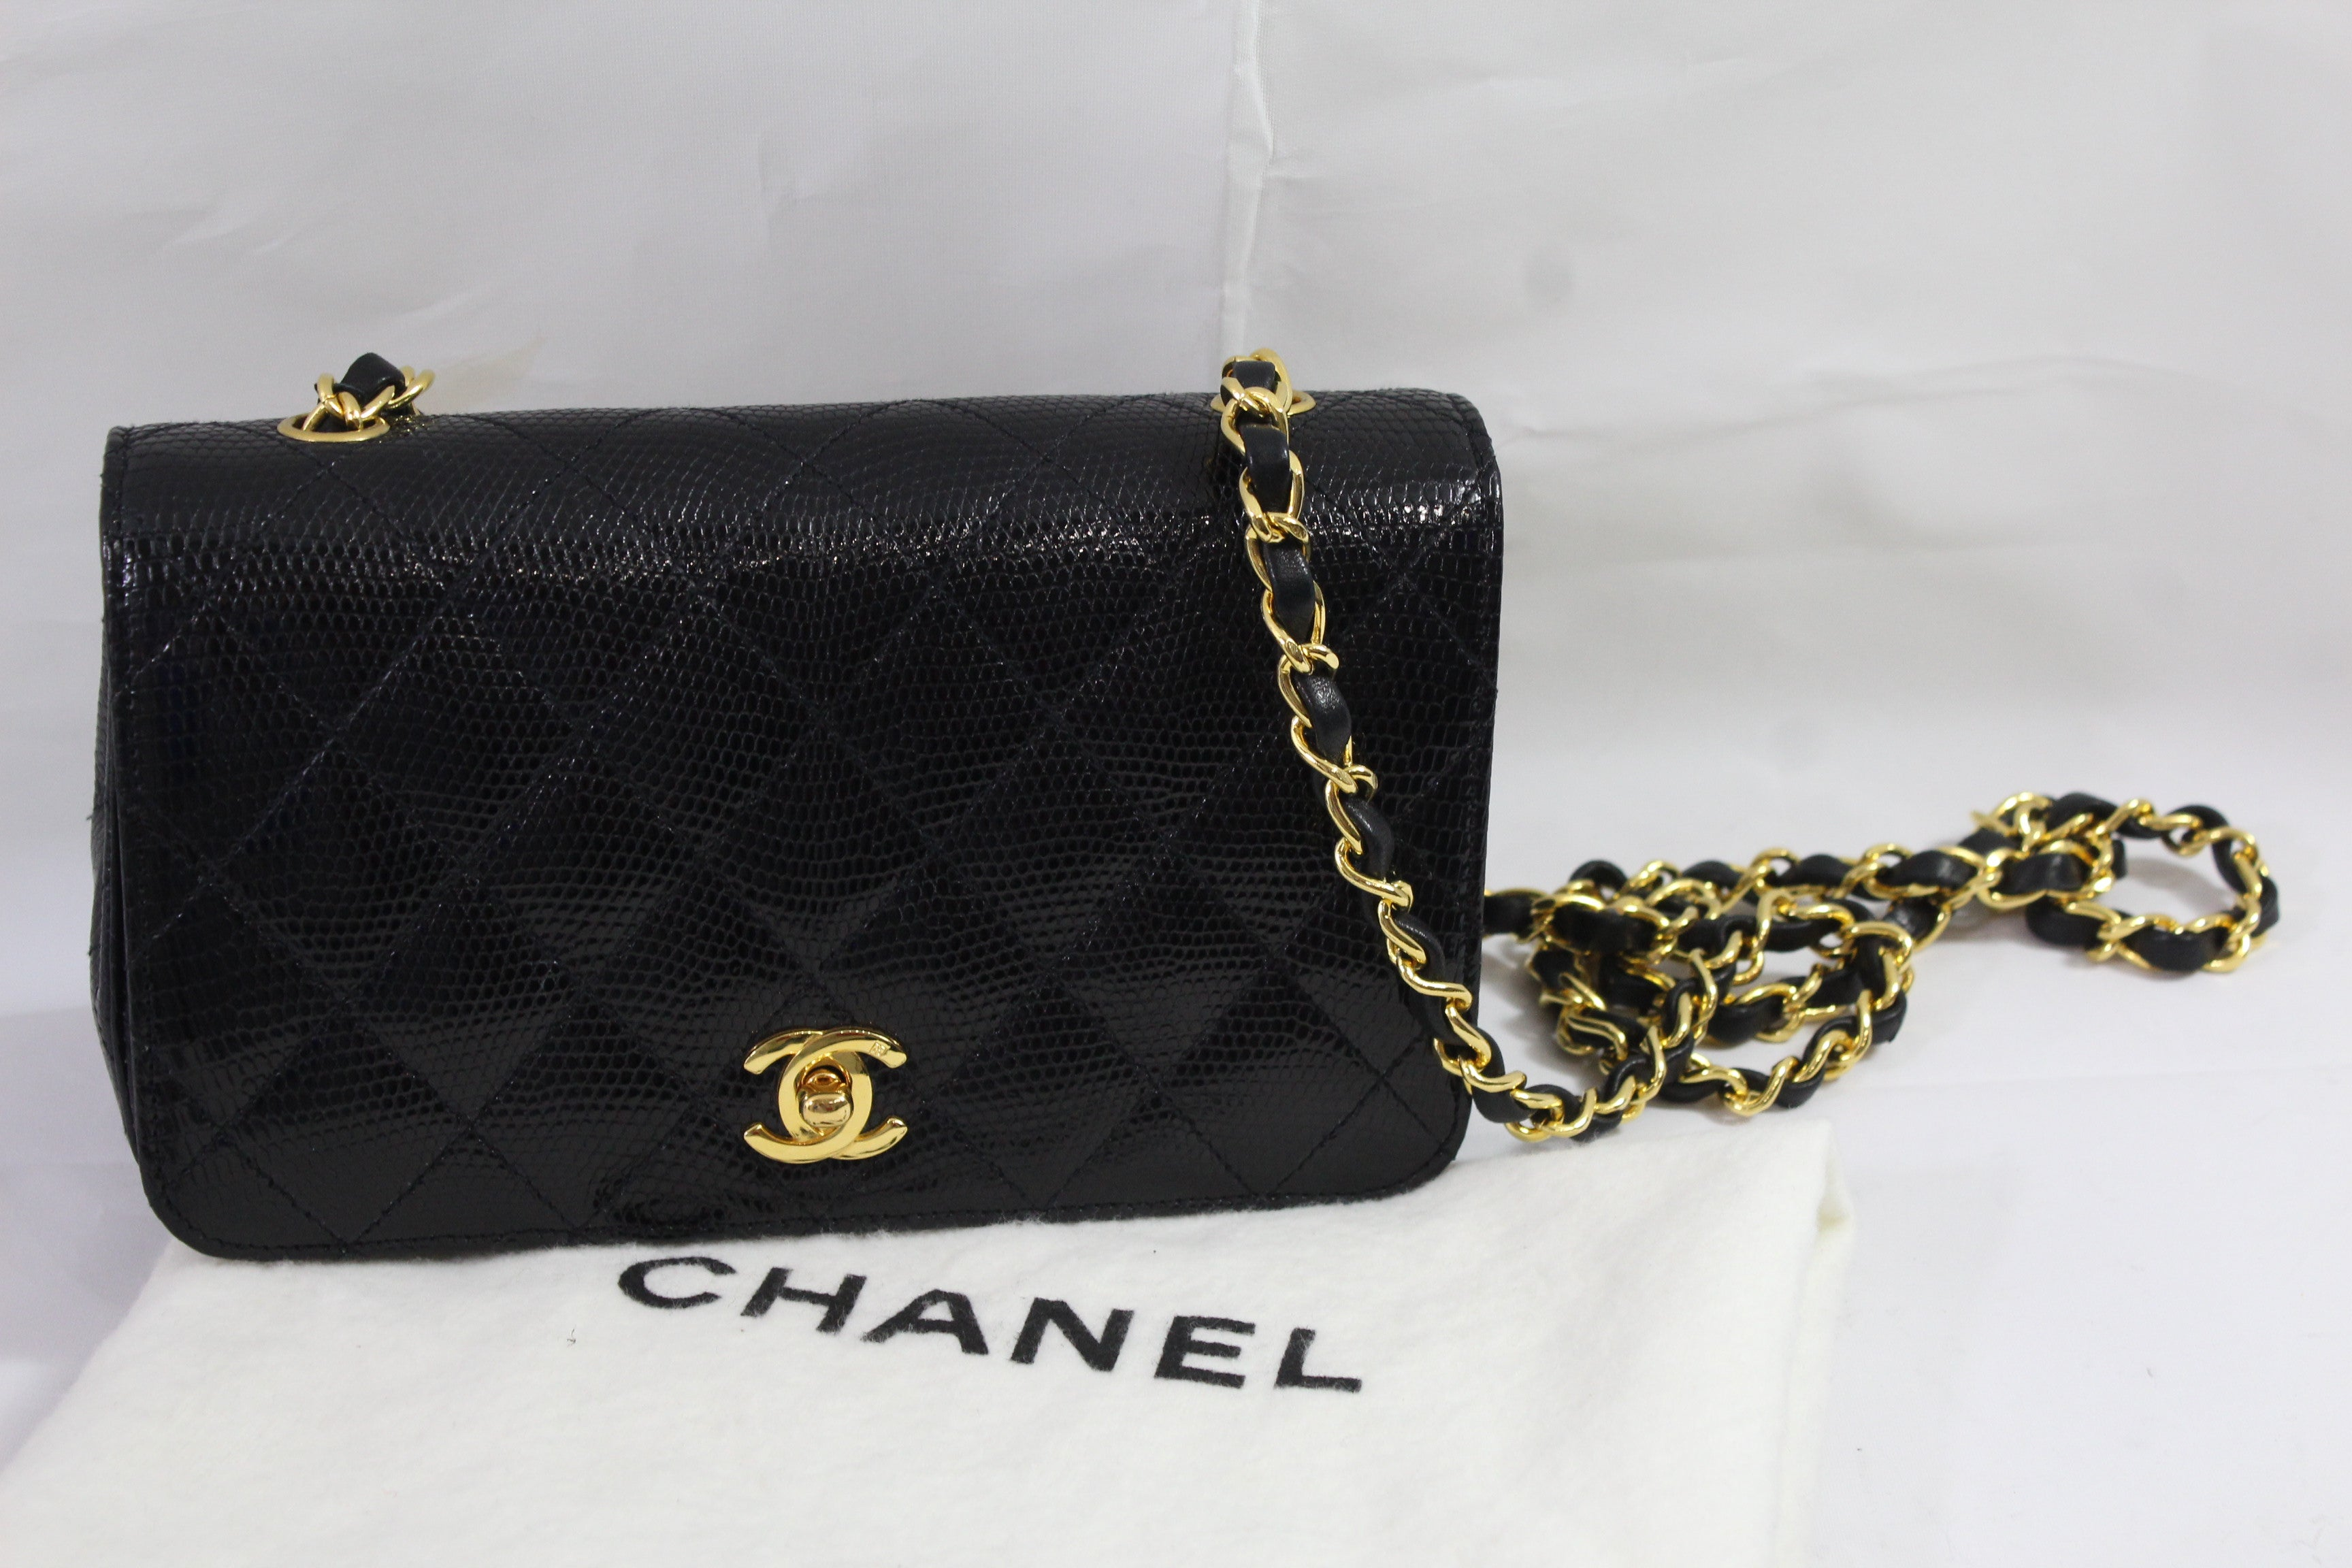 8b3eb310a122da Black Chanel Mini 20 cm Lezard Bag with Golden Hardware at 1stdibs